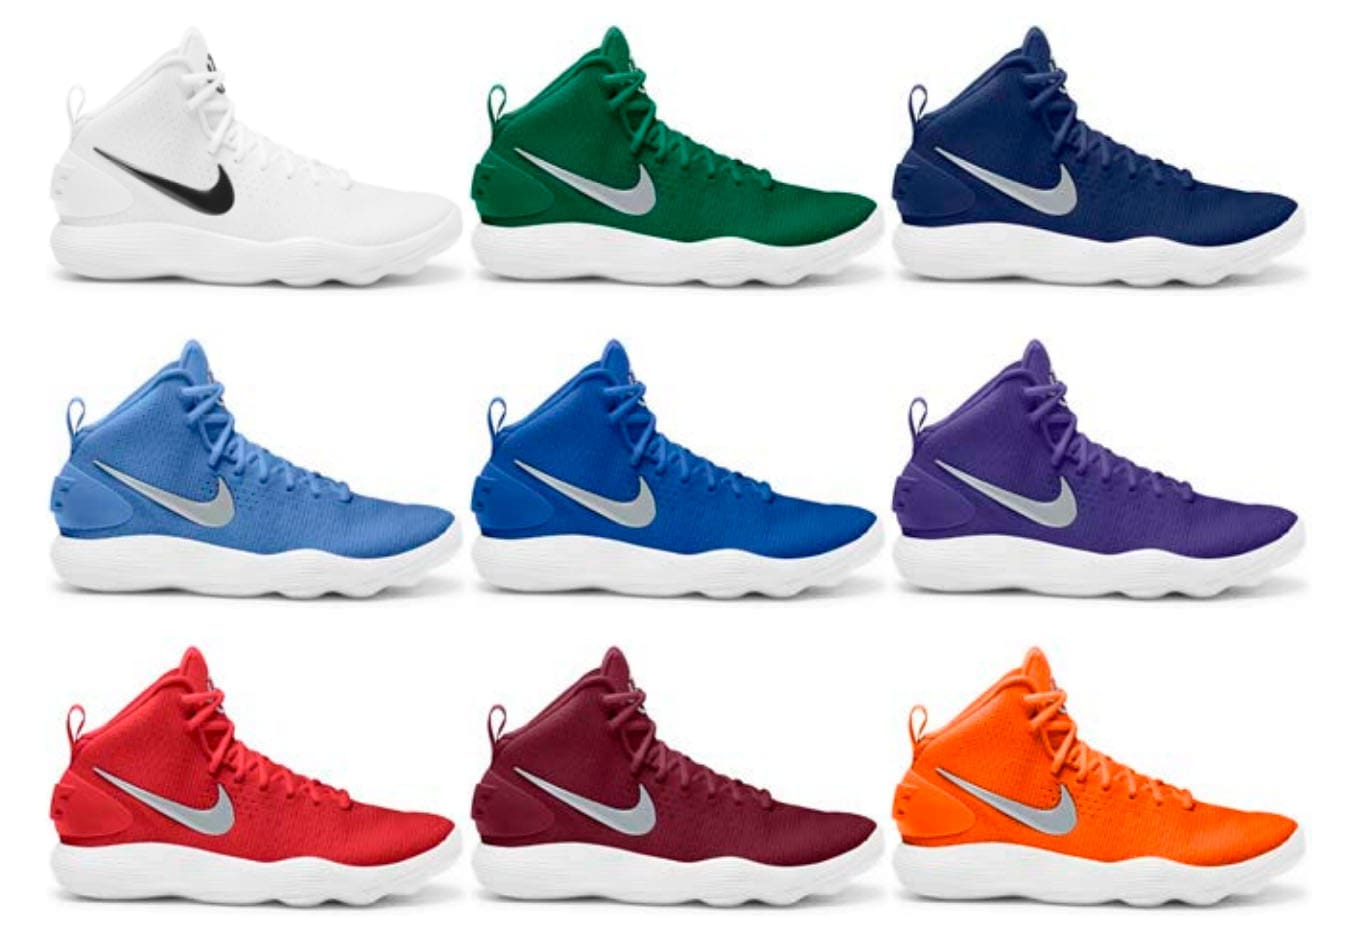 buy online 08acc d3fbb First Look at the Nike Hyperdunk 2017 - Kicksologists.com